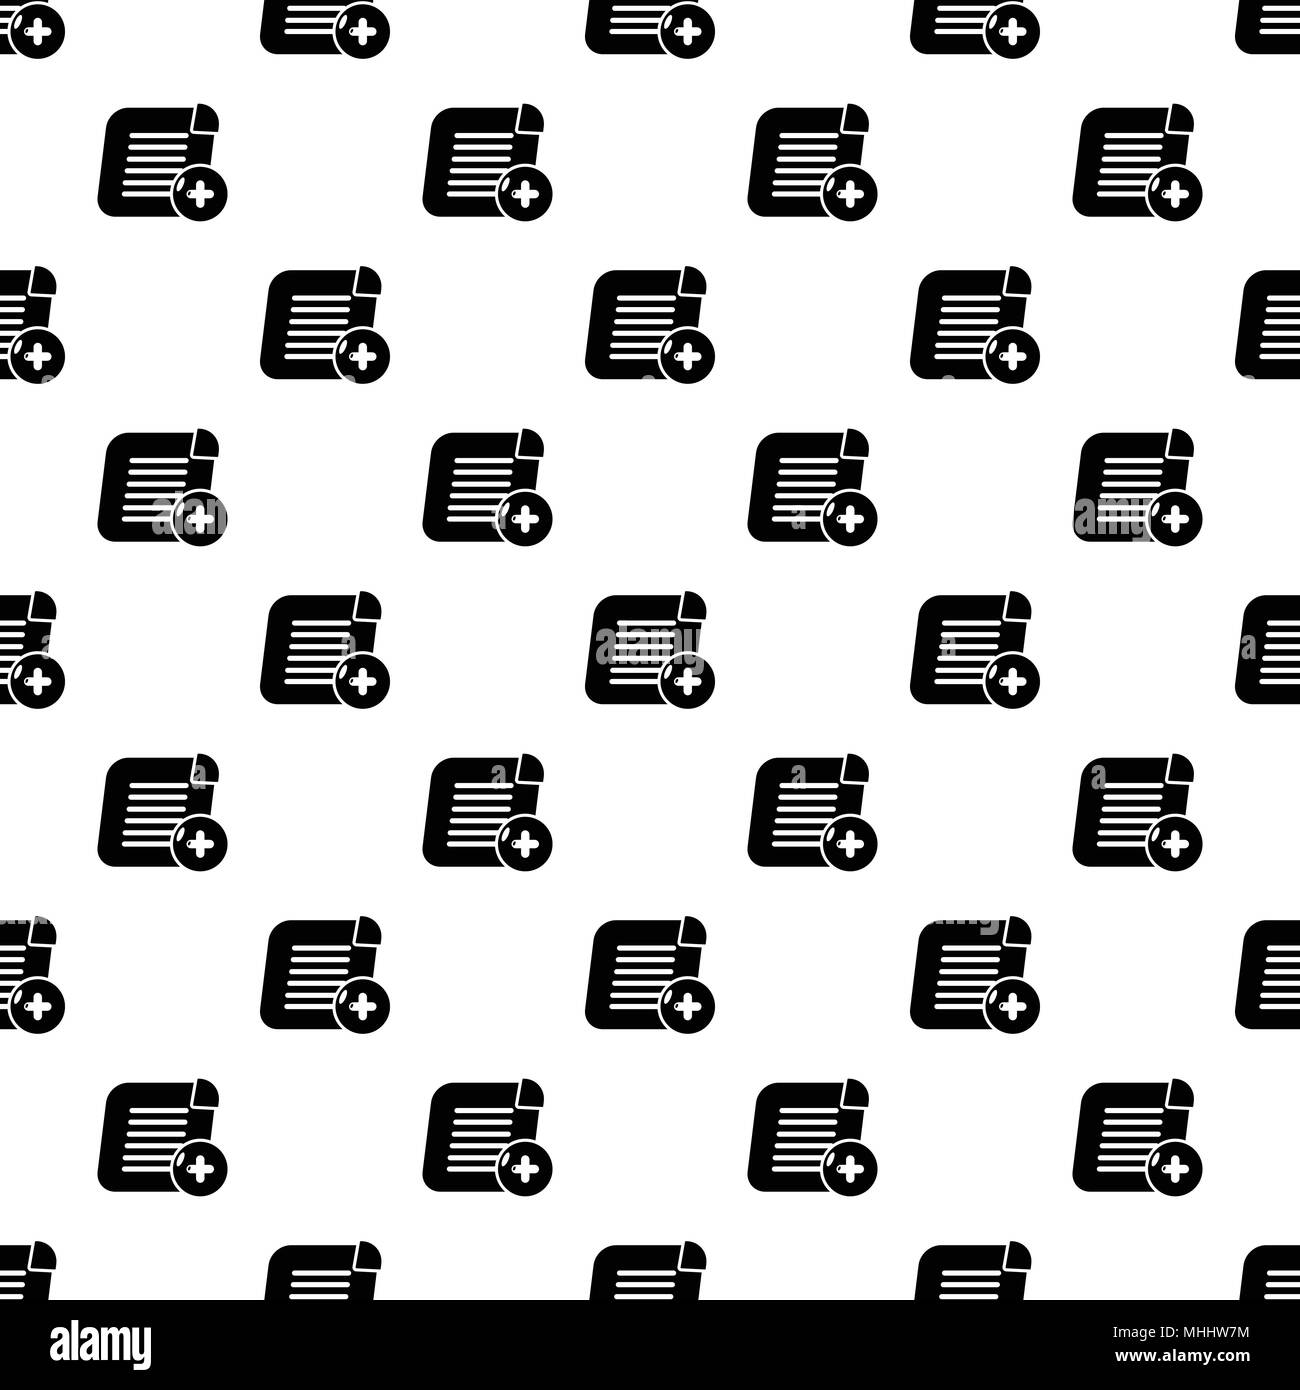 New Wallpaper Black And White Stock Photos Images Alamy